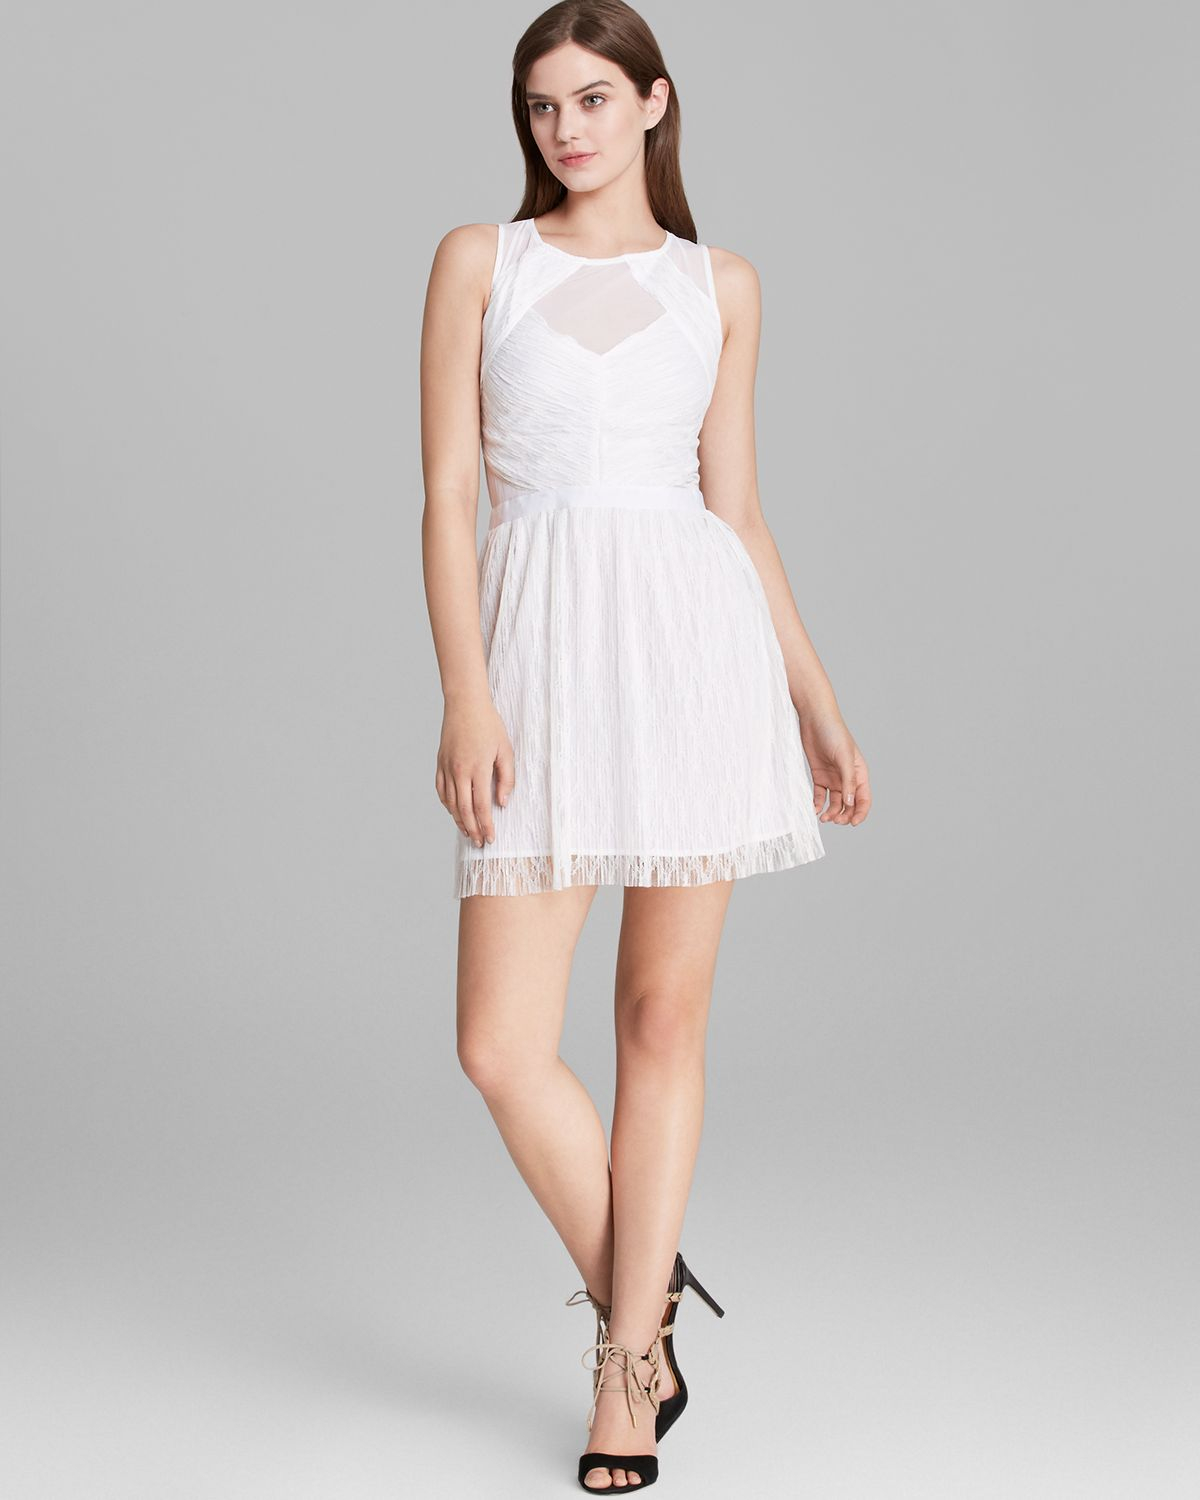 Guess Dress Crinkle Lace In White Lyst